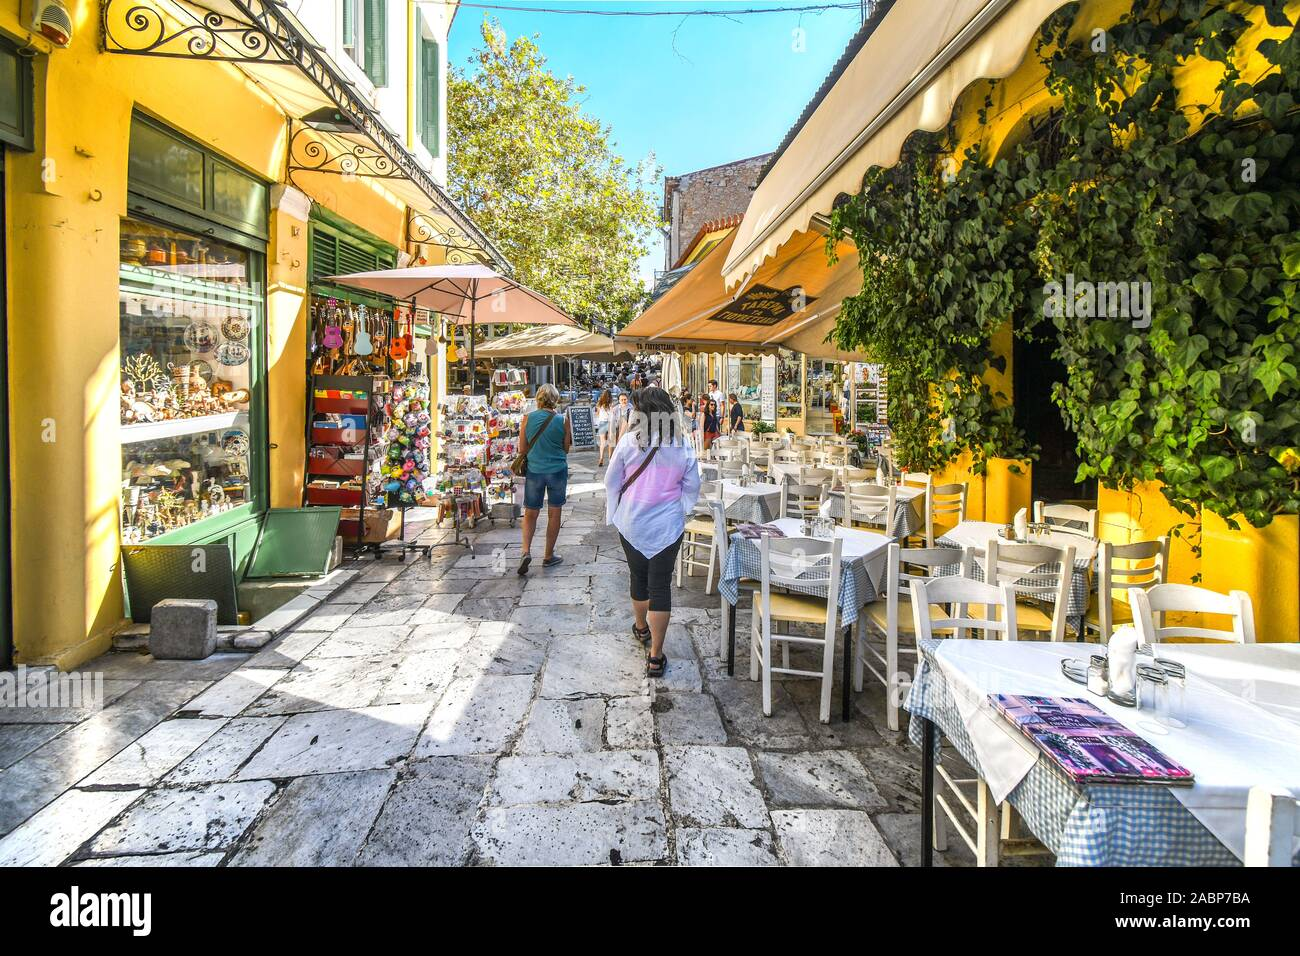 Tourists walk past cafes and shops through narrow streets and alleys in the touristic Plaka district in the heart of historical Athens, Greece Stock Photo